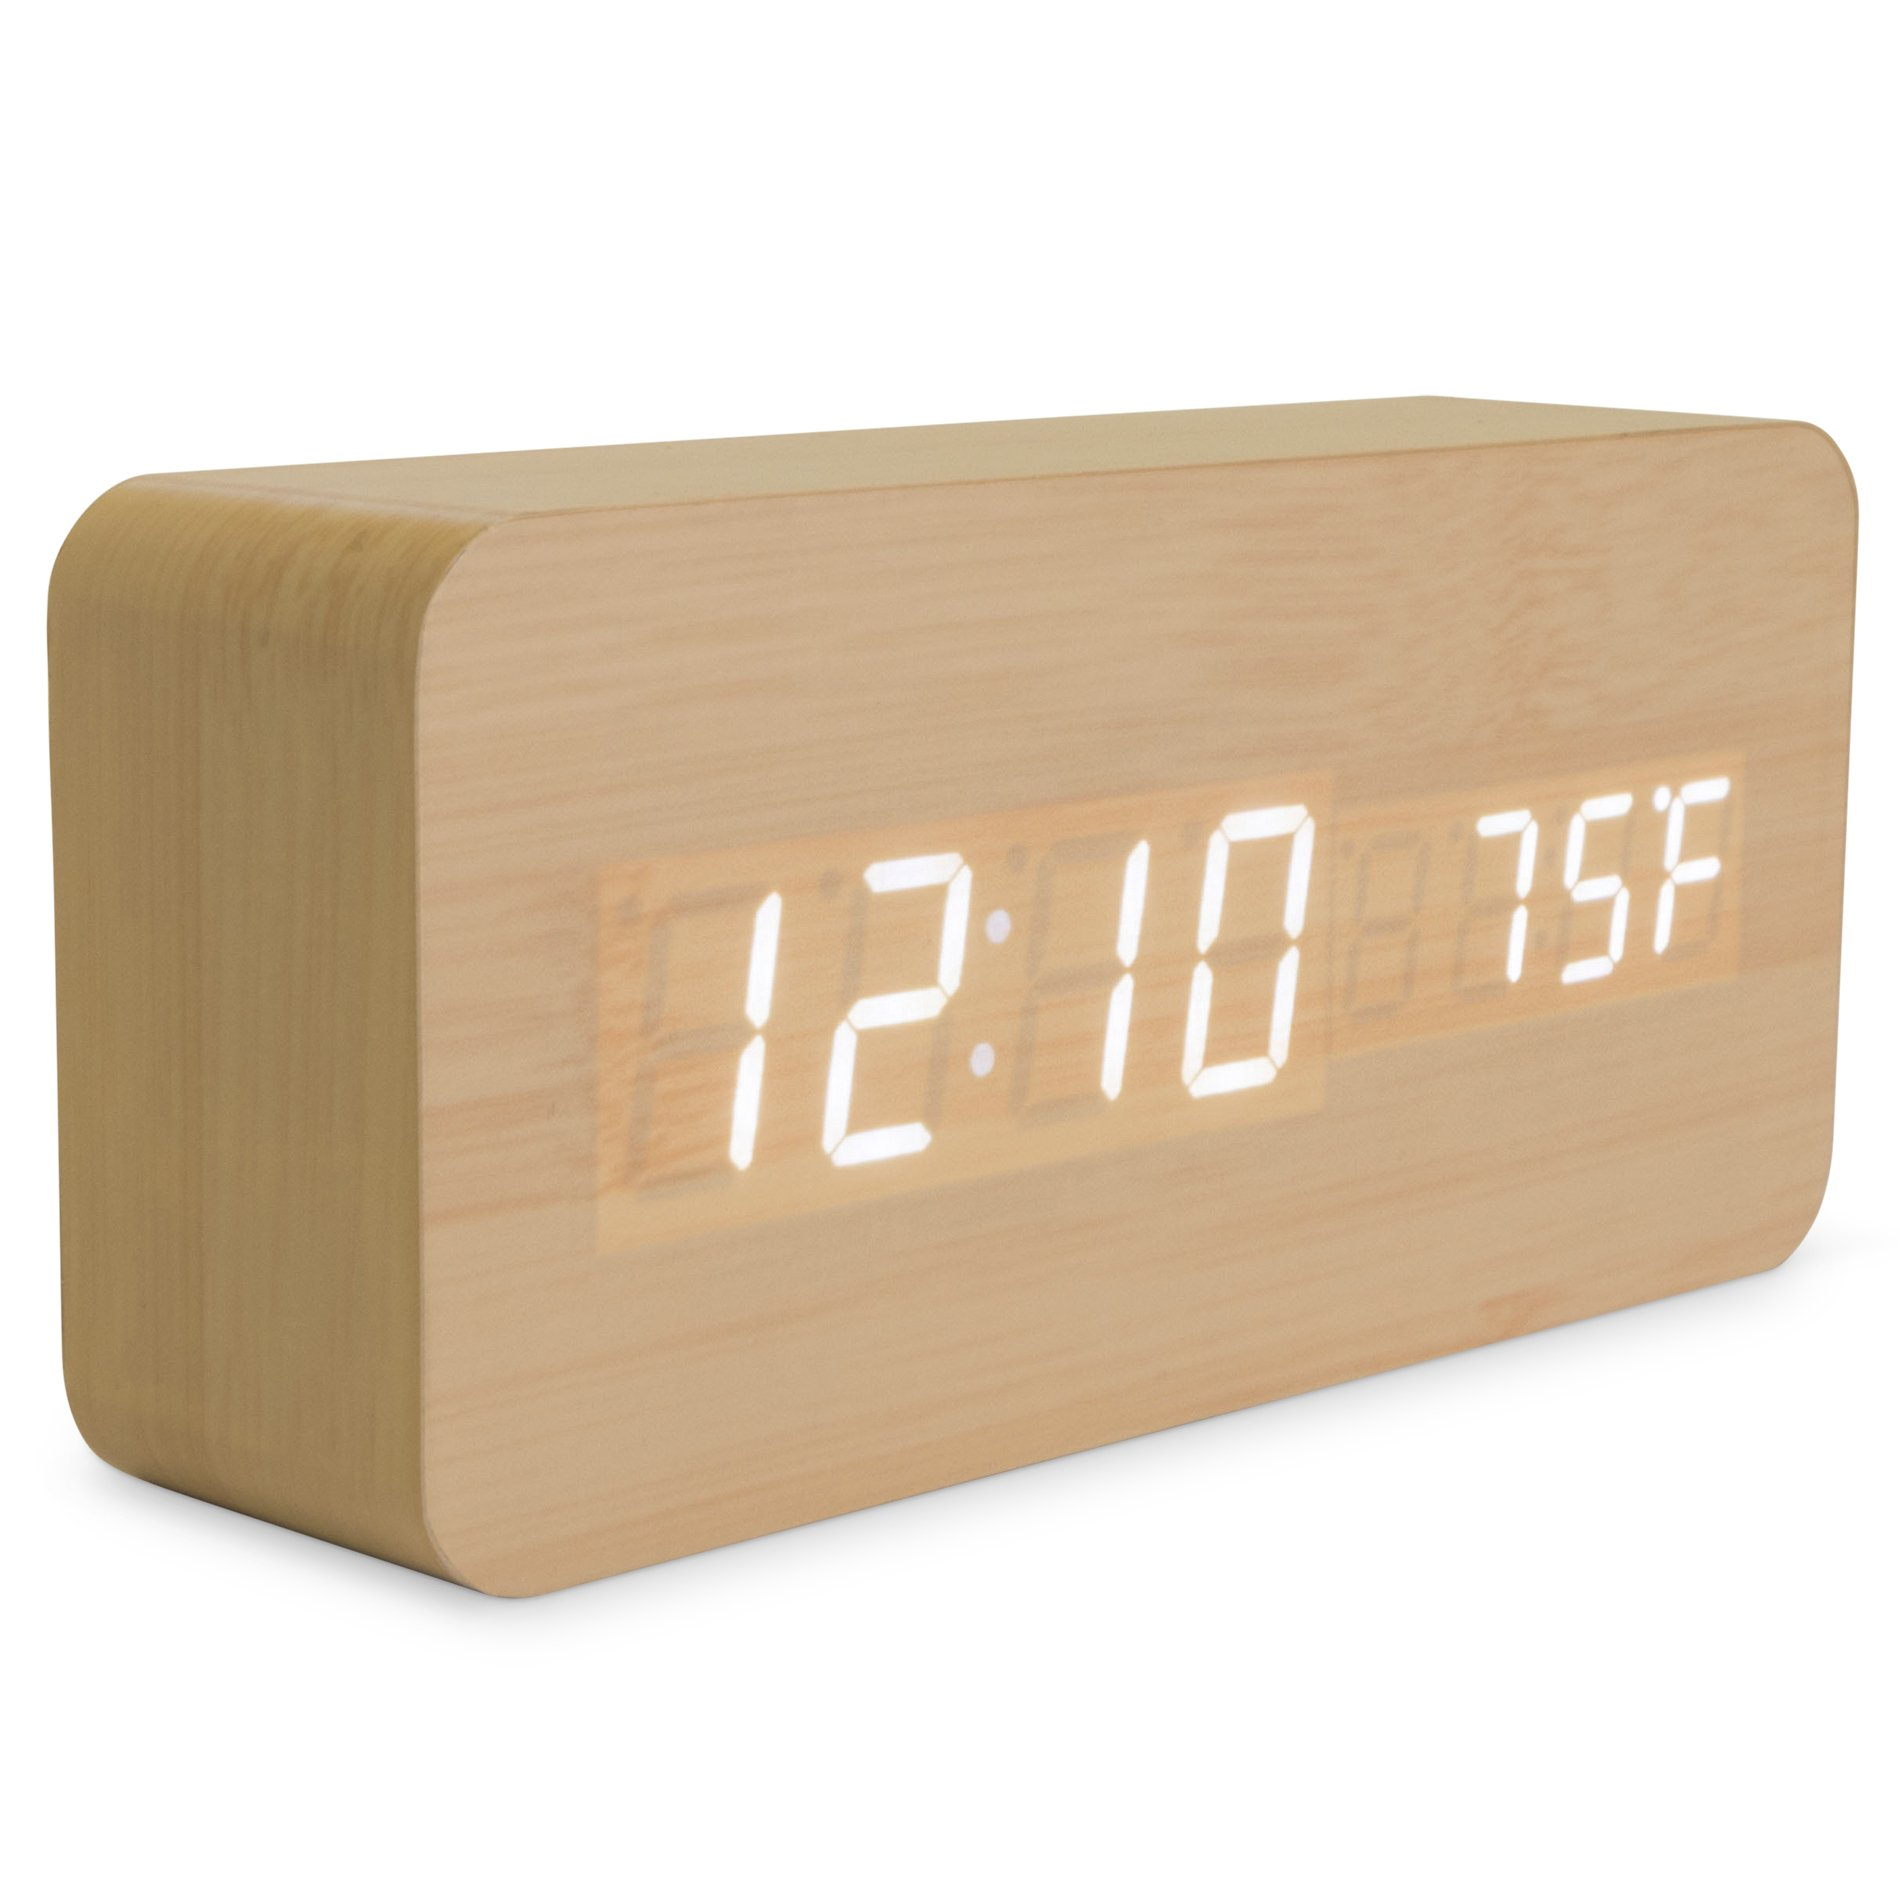 Bamboo Wood Digital Alarm Clock - 3-Level White LED Time, Date, Temperature Display - Sleek, Modern Design - Voice Control, 3 Alarms, USB - Portable Wooden Clocks for Bedroom, Bedside, Travel